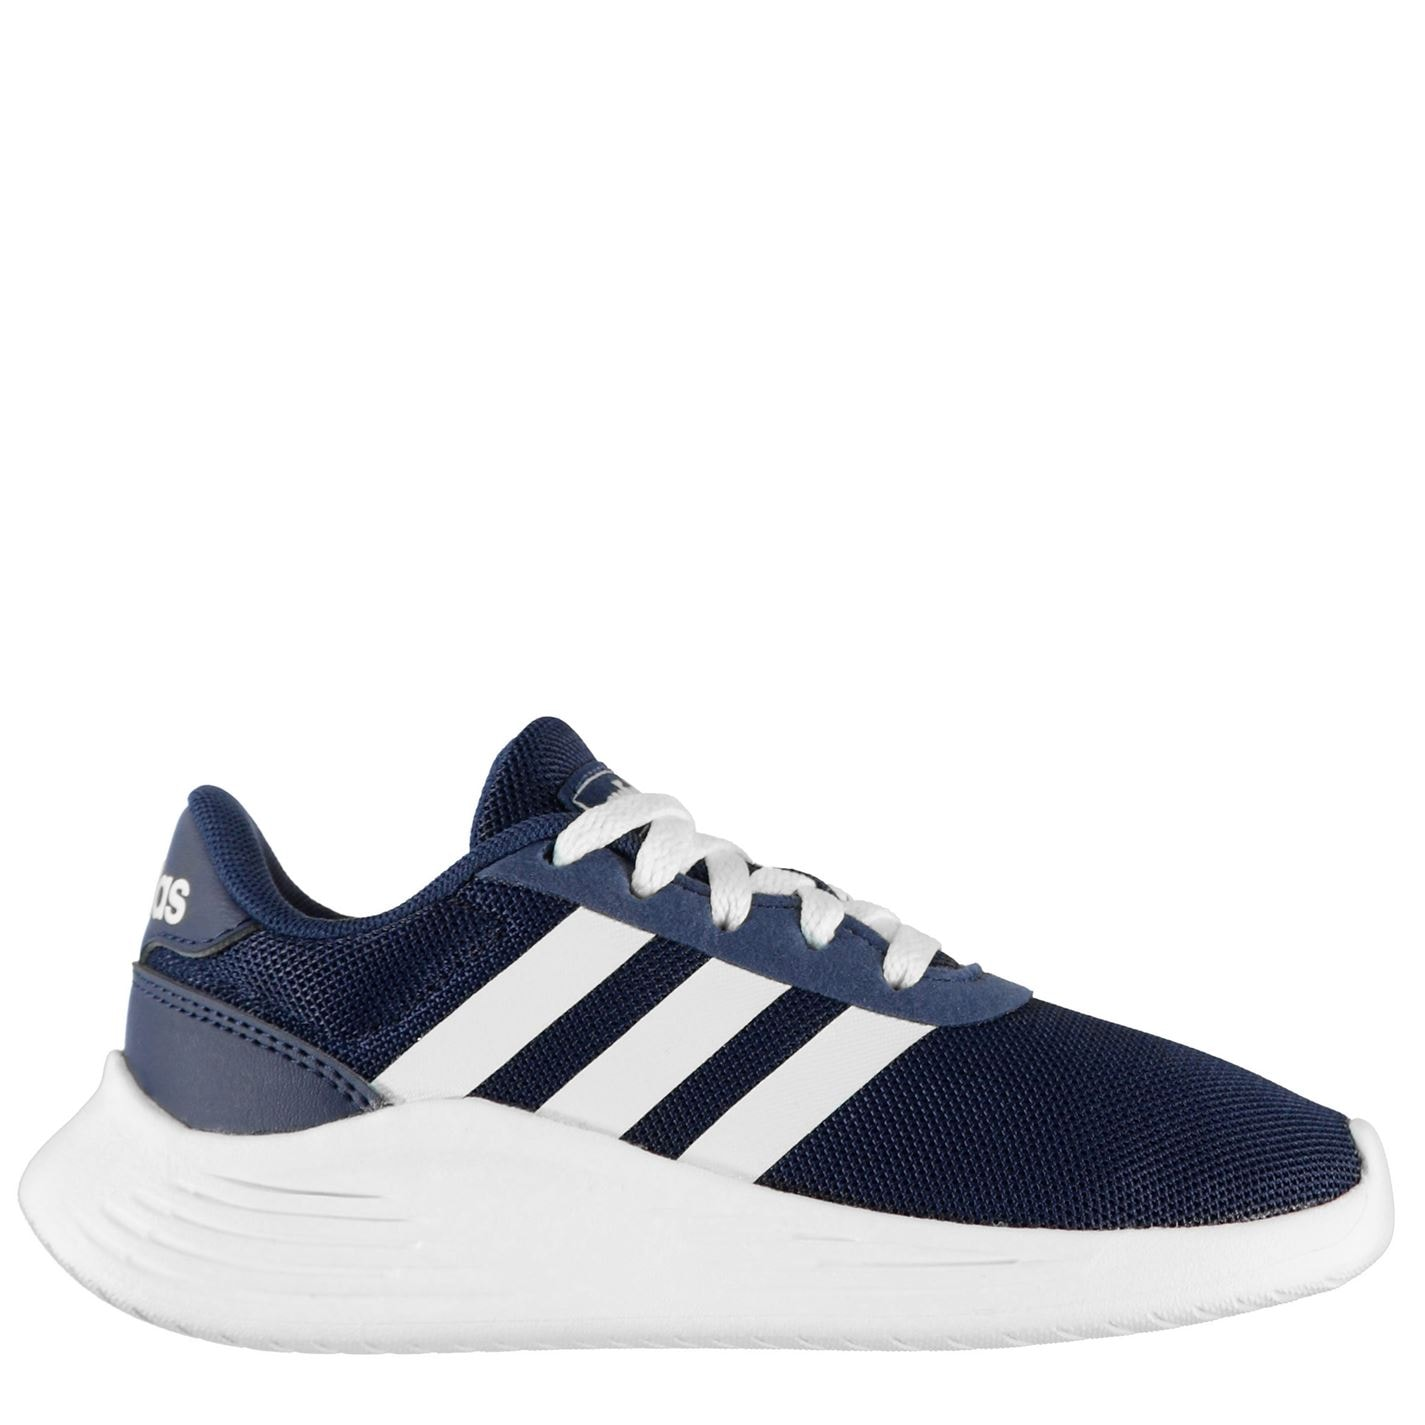 adidas Lite Racer 2 Trainers Child Boys Navy/Wht/Wht